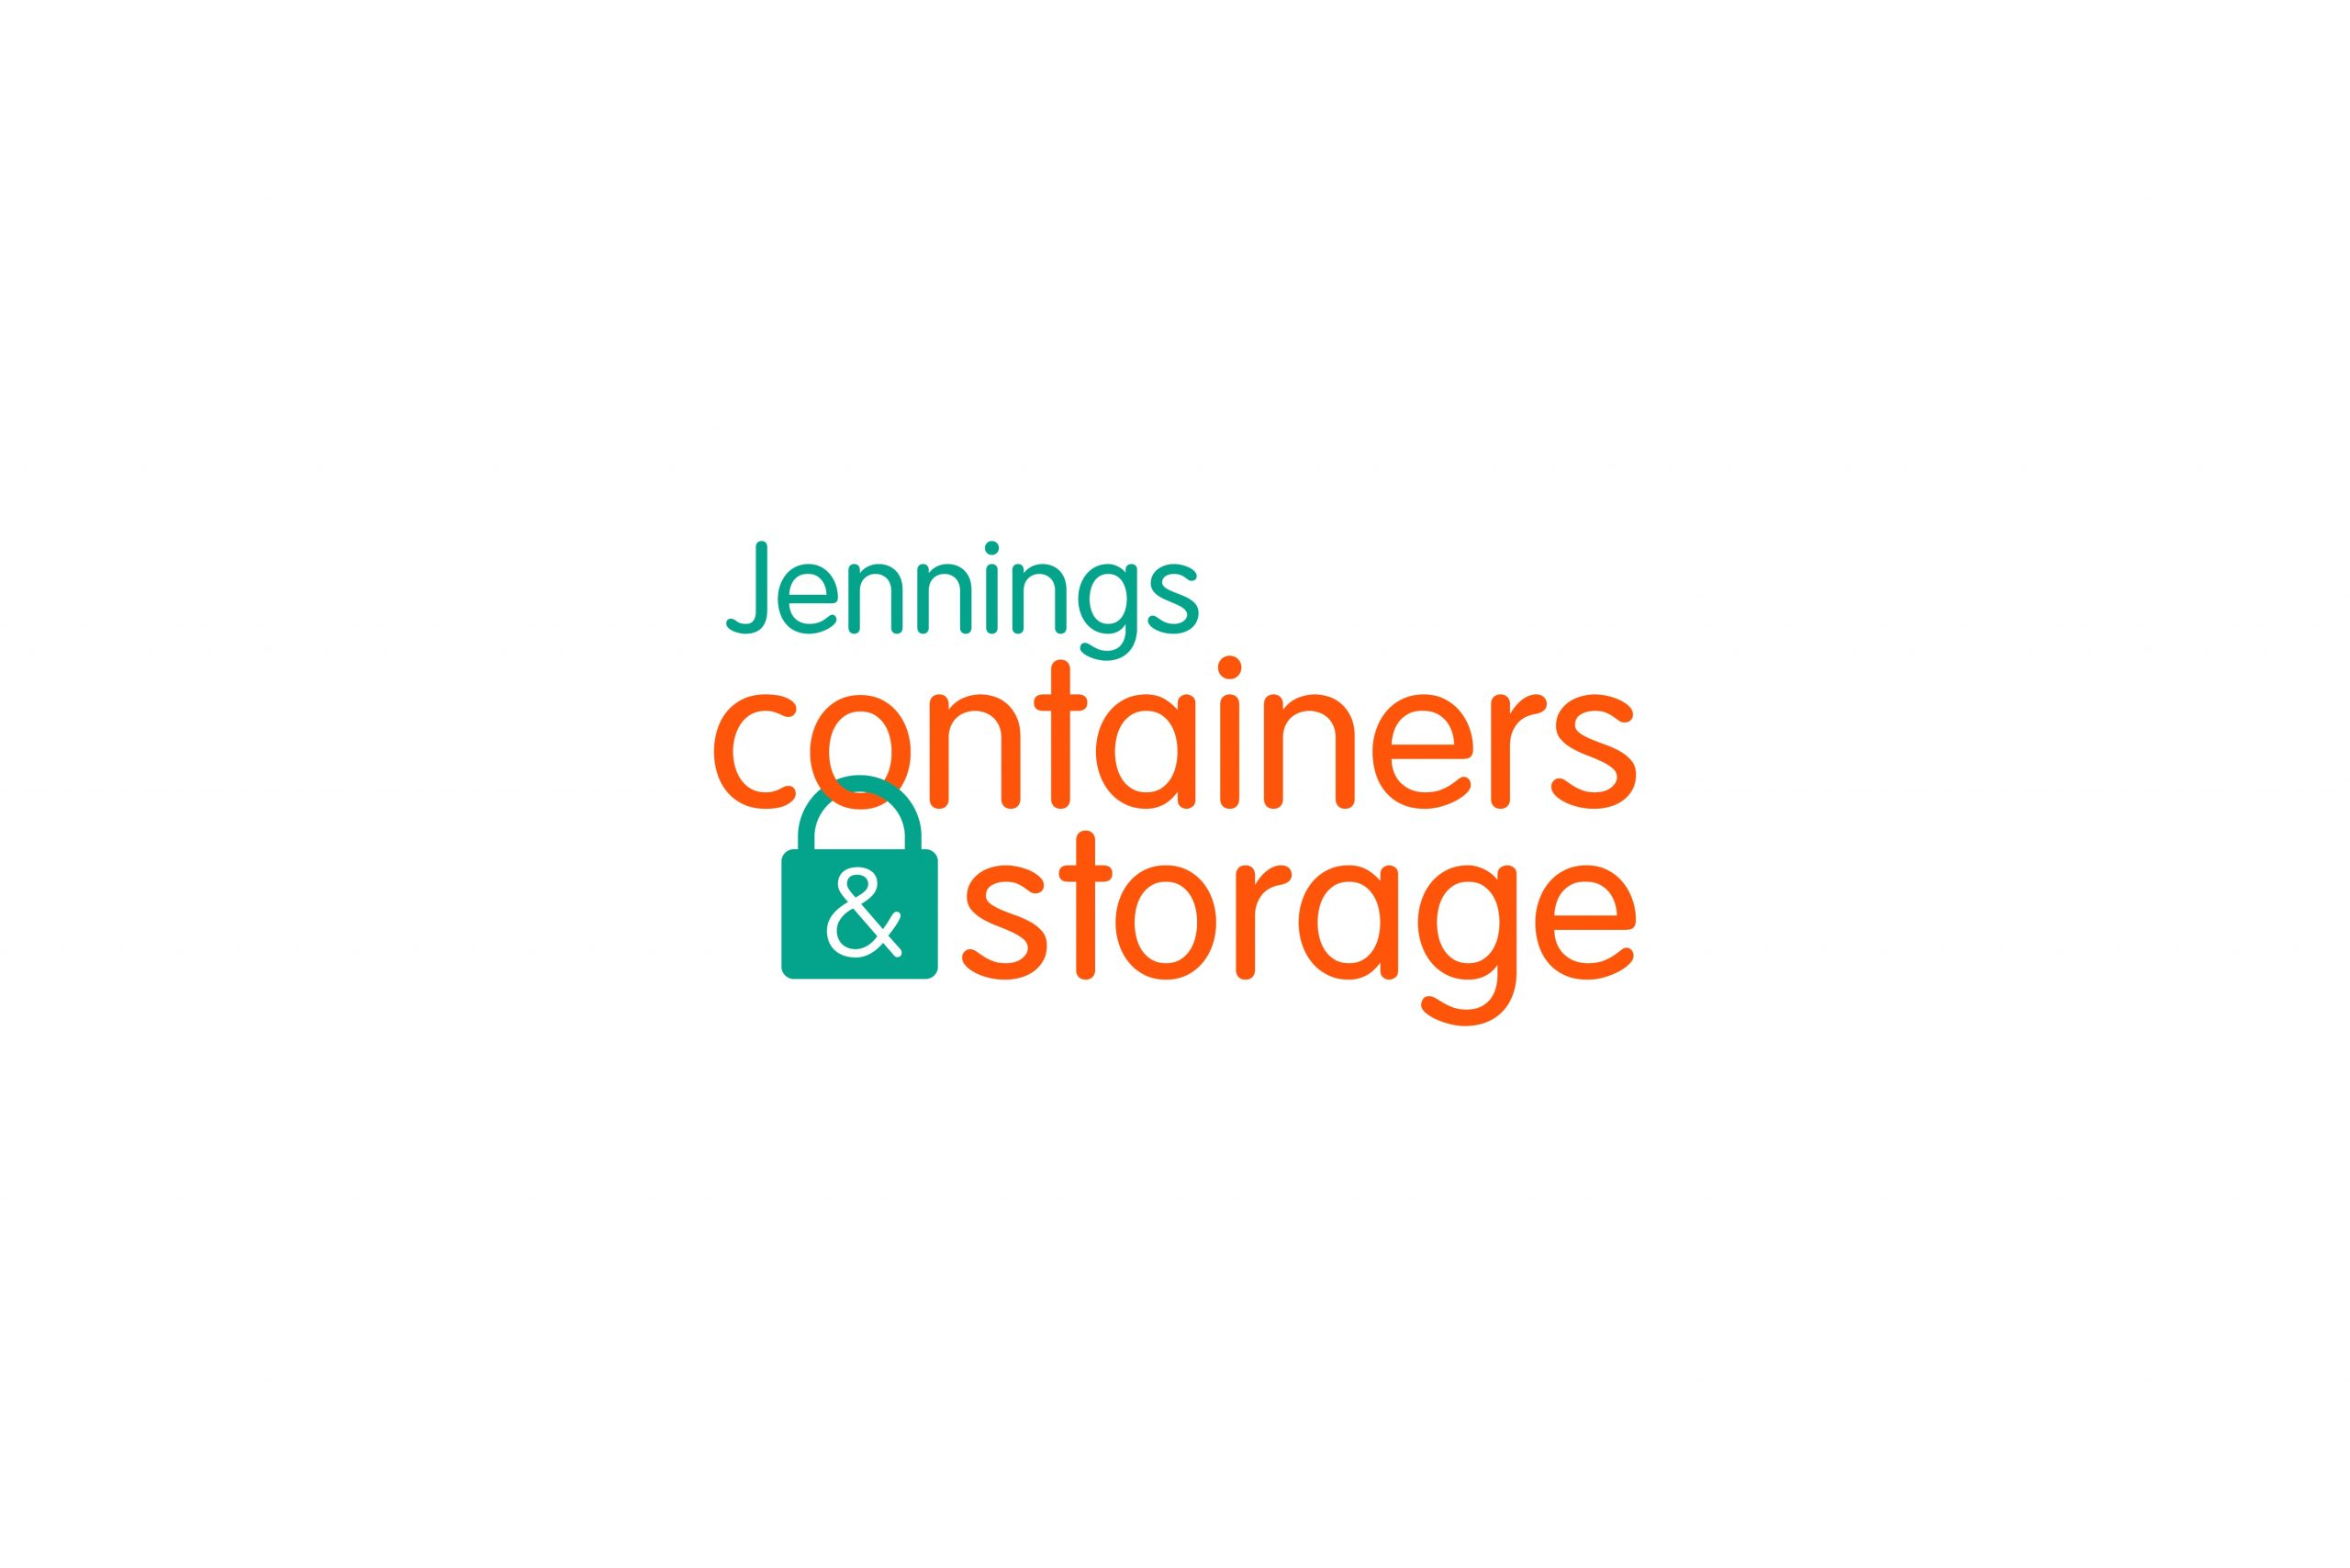 Jennings Containers & Storage a storage company in 50 Monument Business Park, Chalgrove, Shire, Oxford, UK